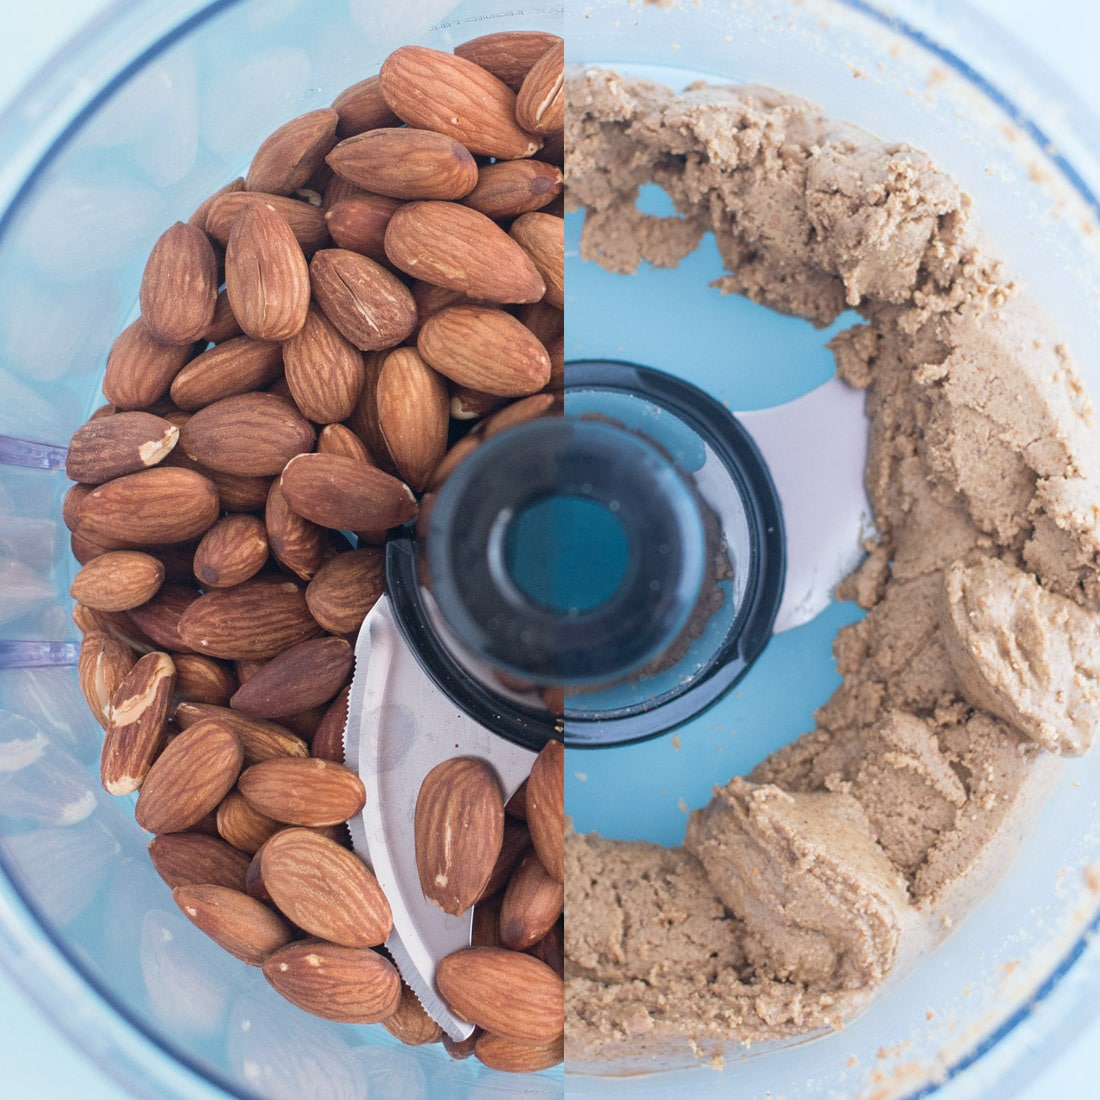 Pumpkin Spice Almond Butter -- This almond butter is so easy to make and only requires a few ingredients. Almonds, pumpkin, spices, and maple syrup make up this recipe. In less than 20 minutes you have yourself a healthy vegan, gluten free, and paleo friendly snack that is Fall approved. - mindfulavocado